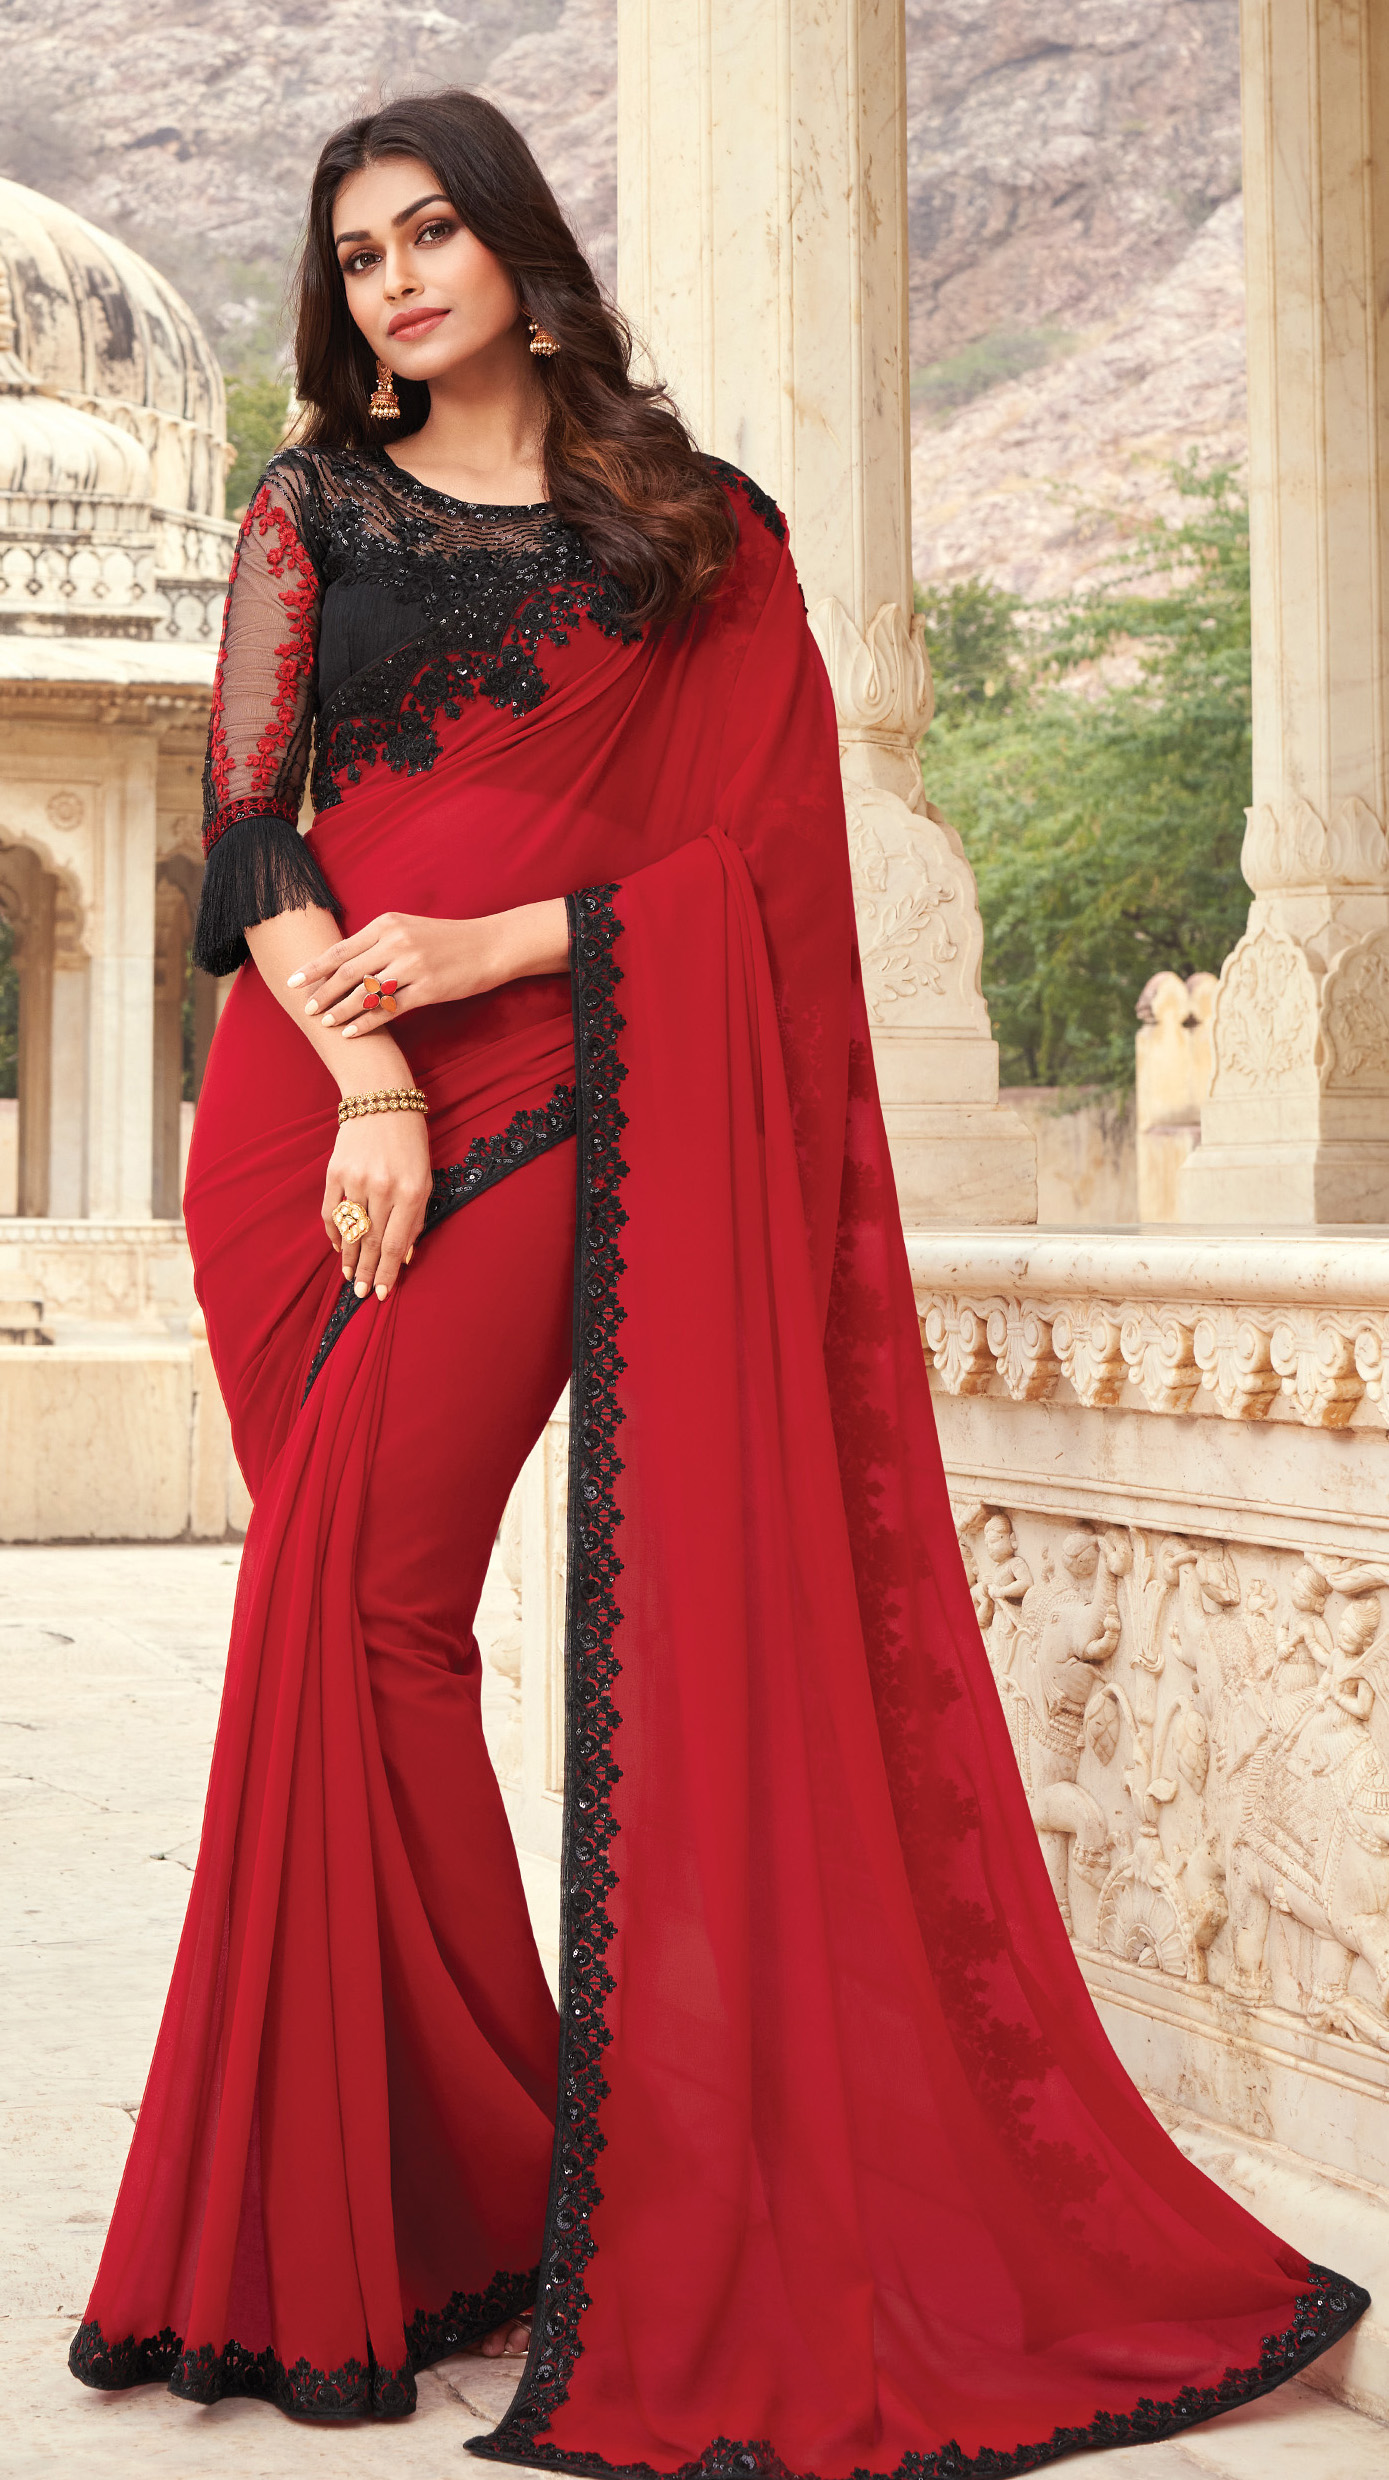 Net Blouse with Designer Saree Red and Black Combination